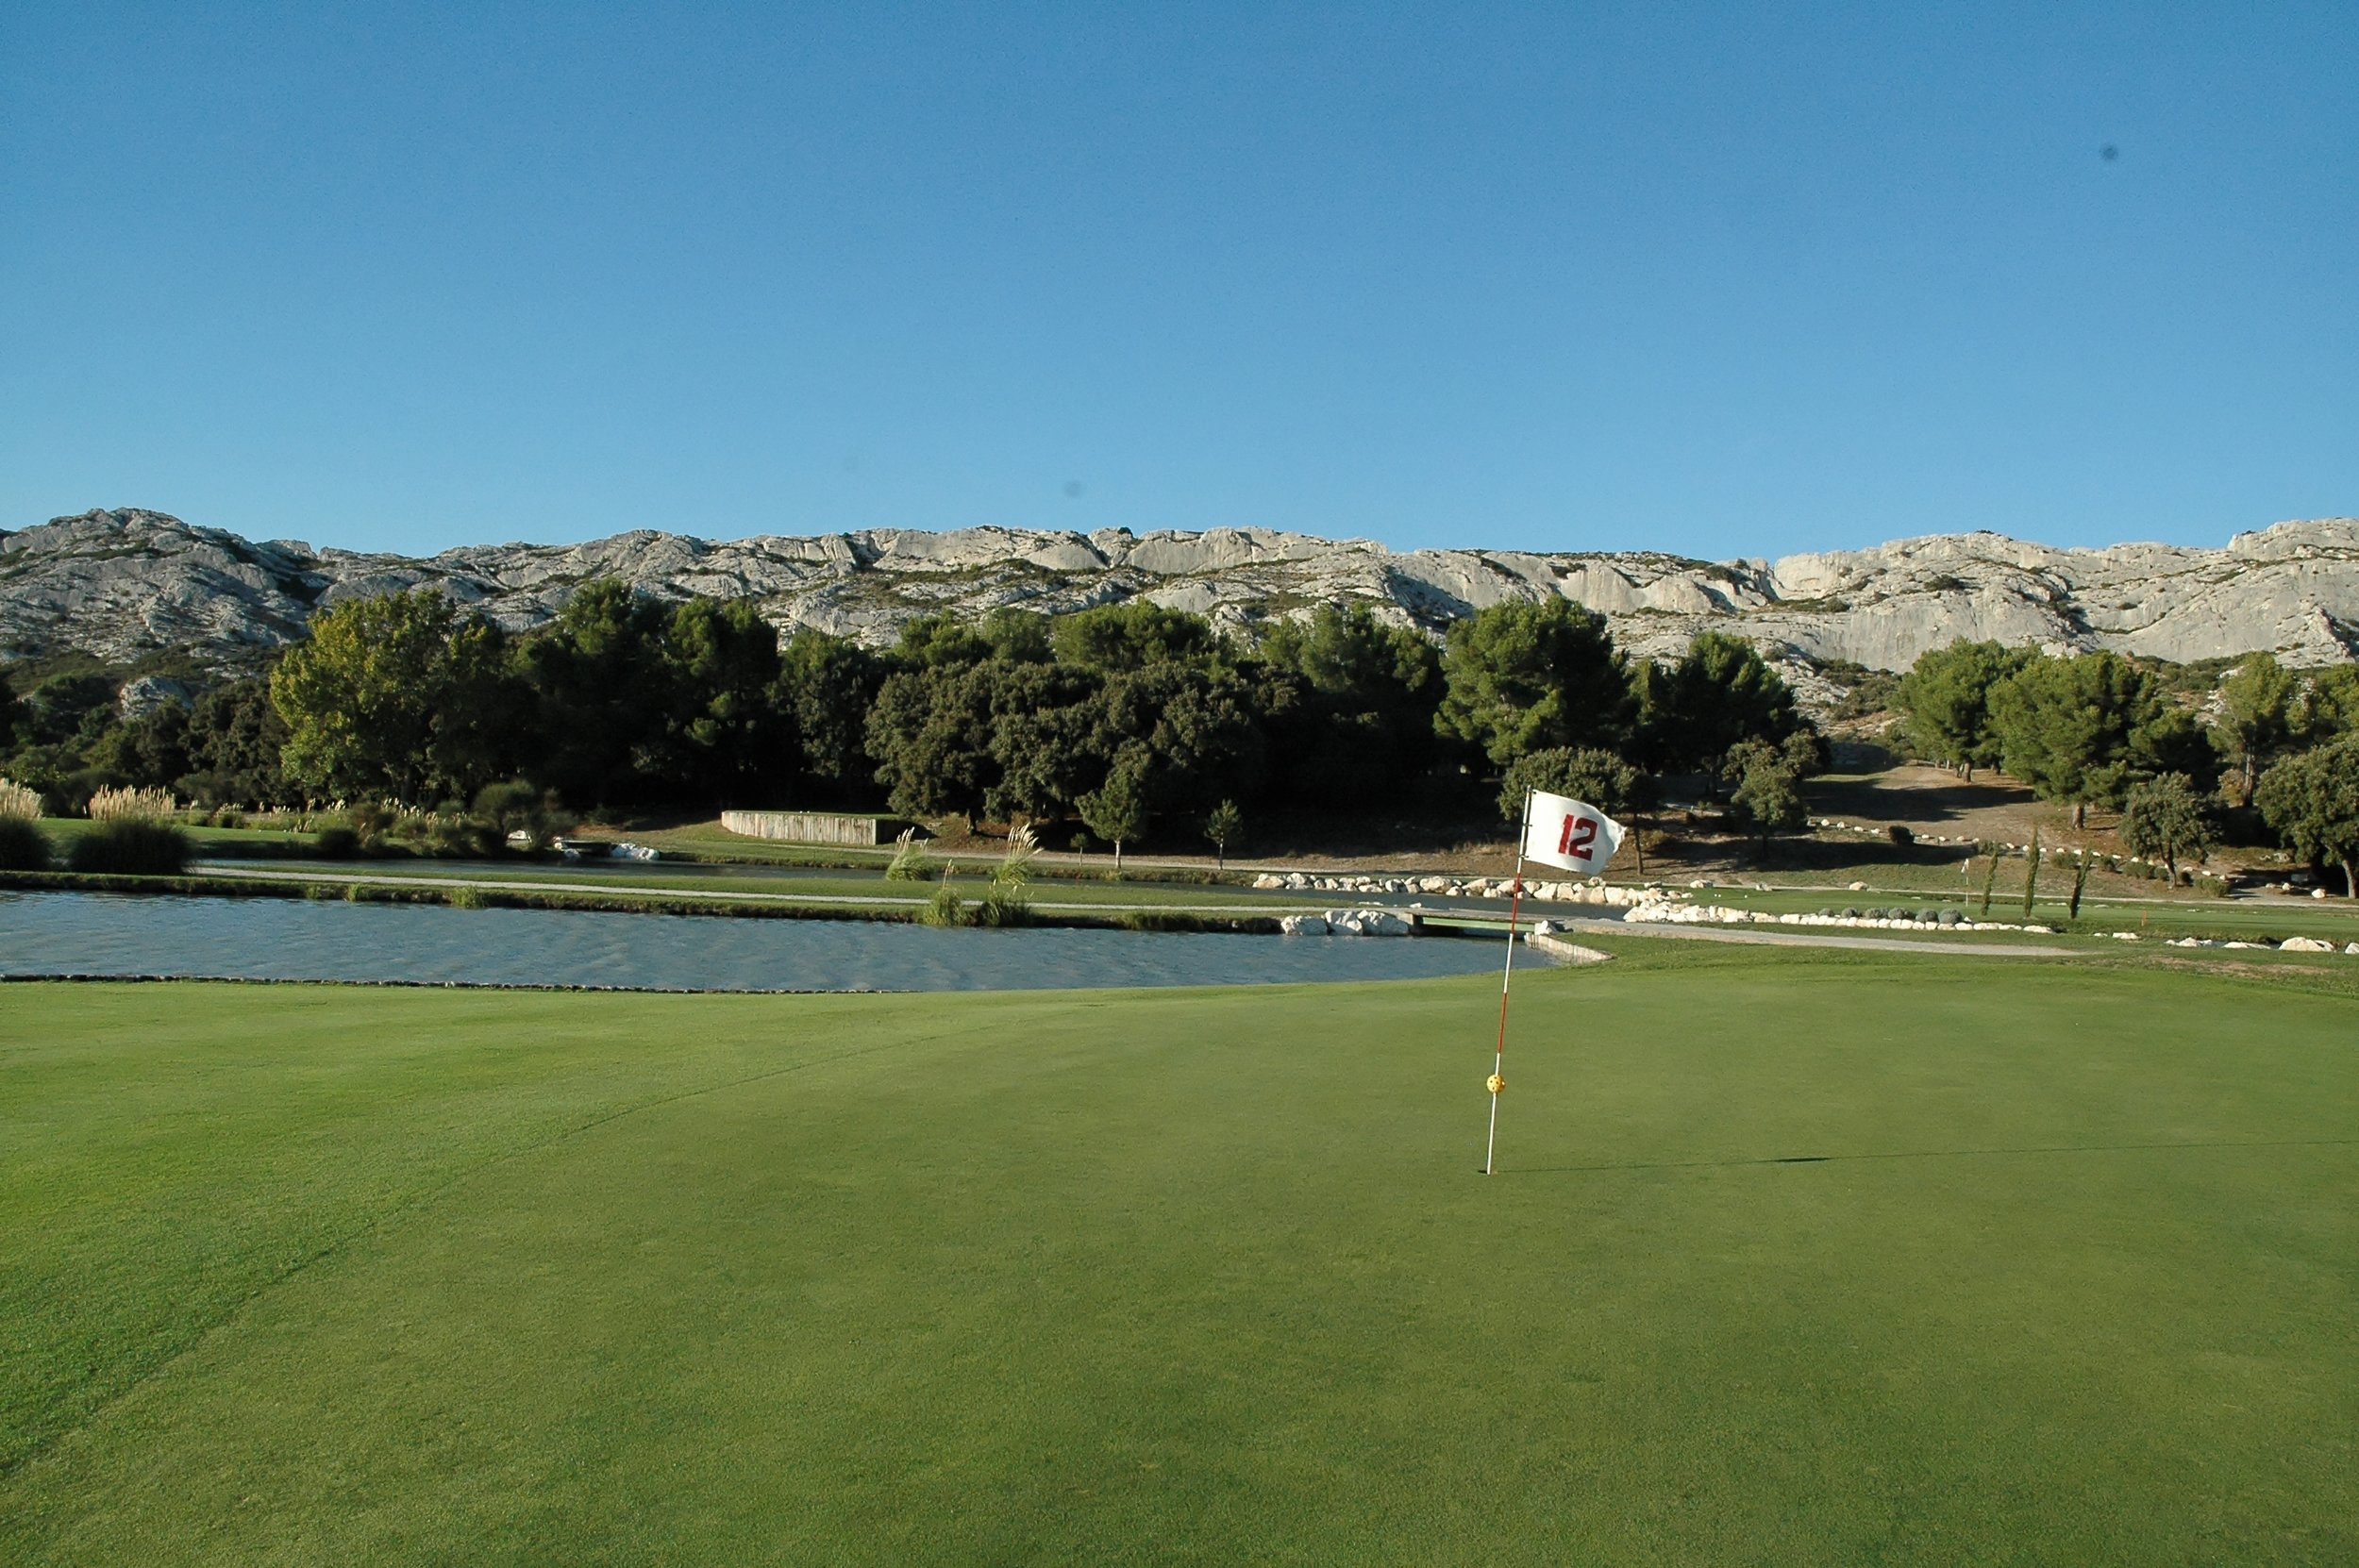 Servanes-Golf-Club3008x2000 (1)_pe.jpg